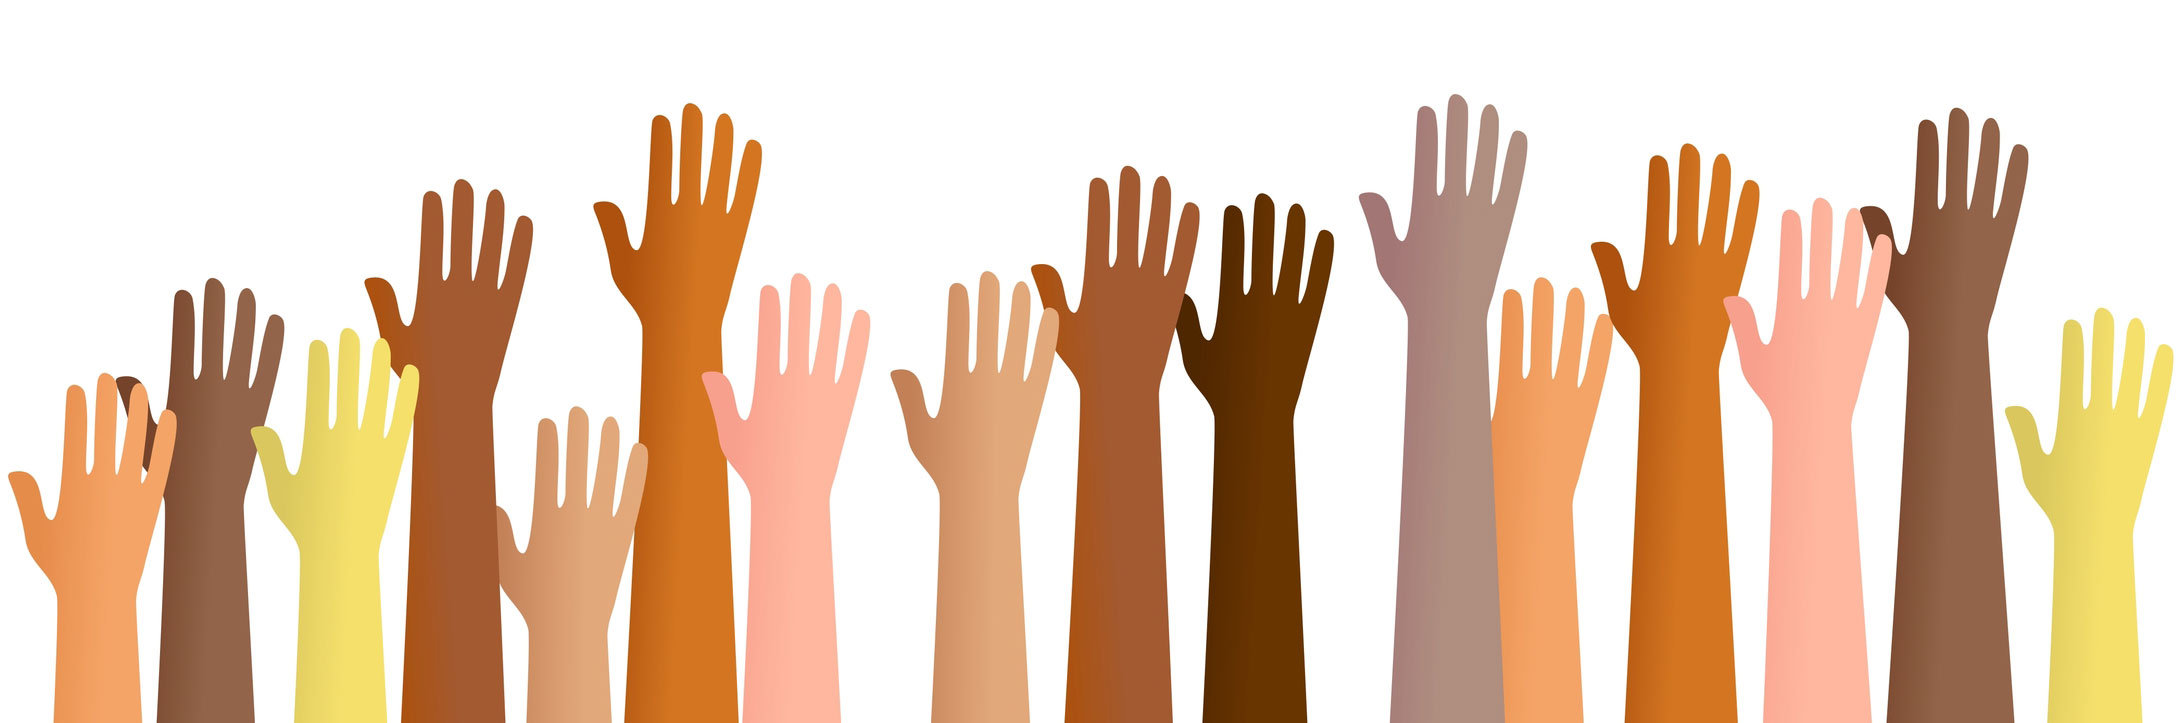 graphic depicting a show of volunteer hands